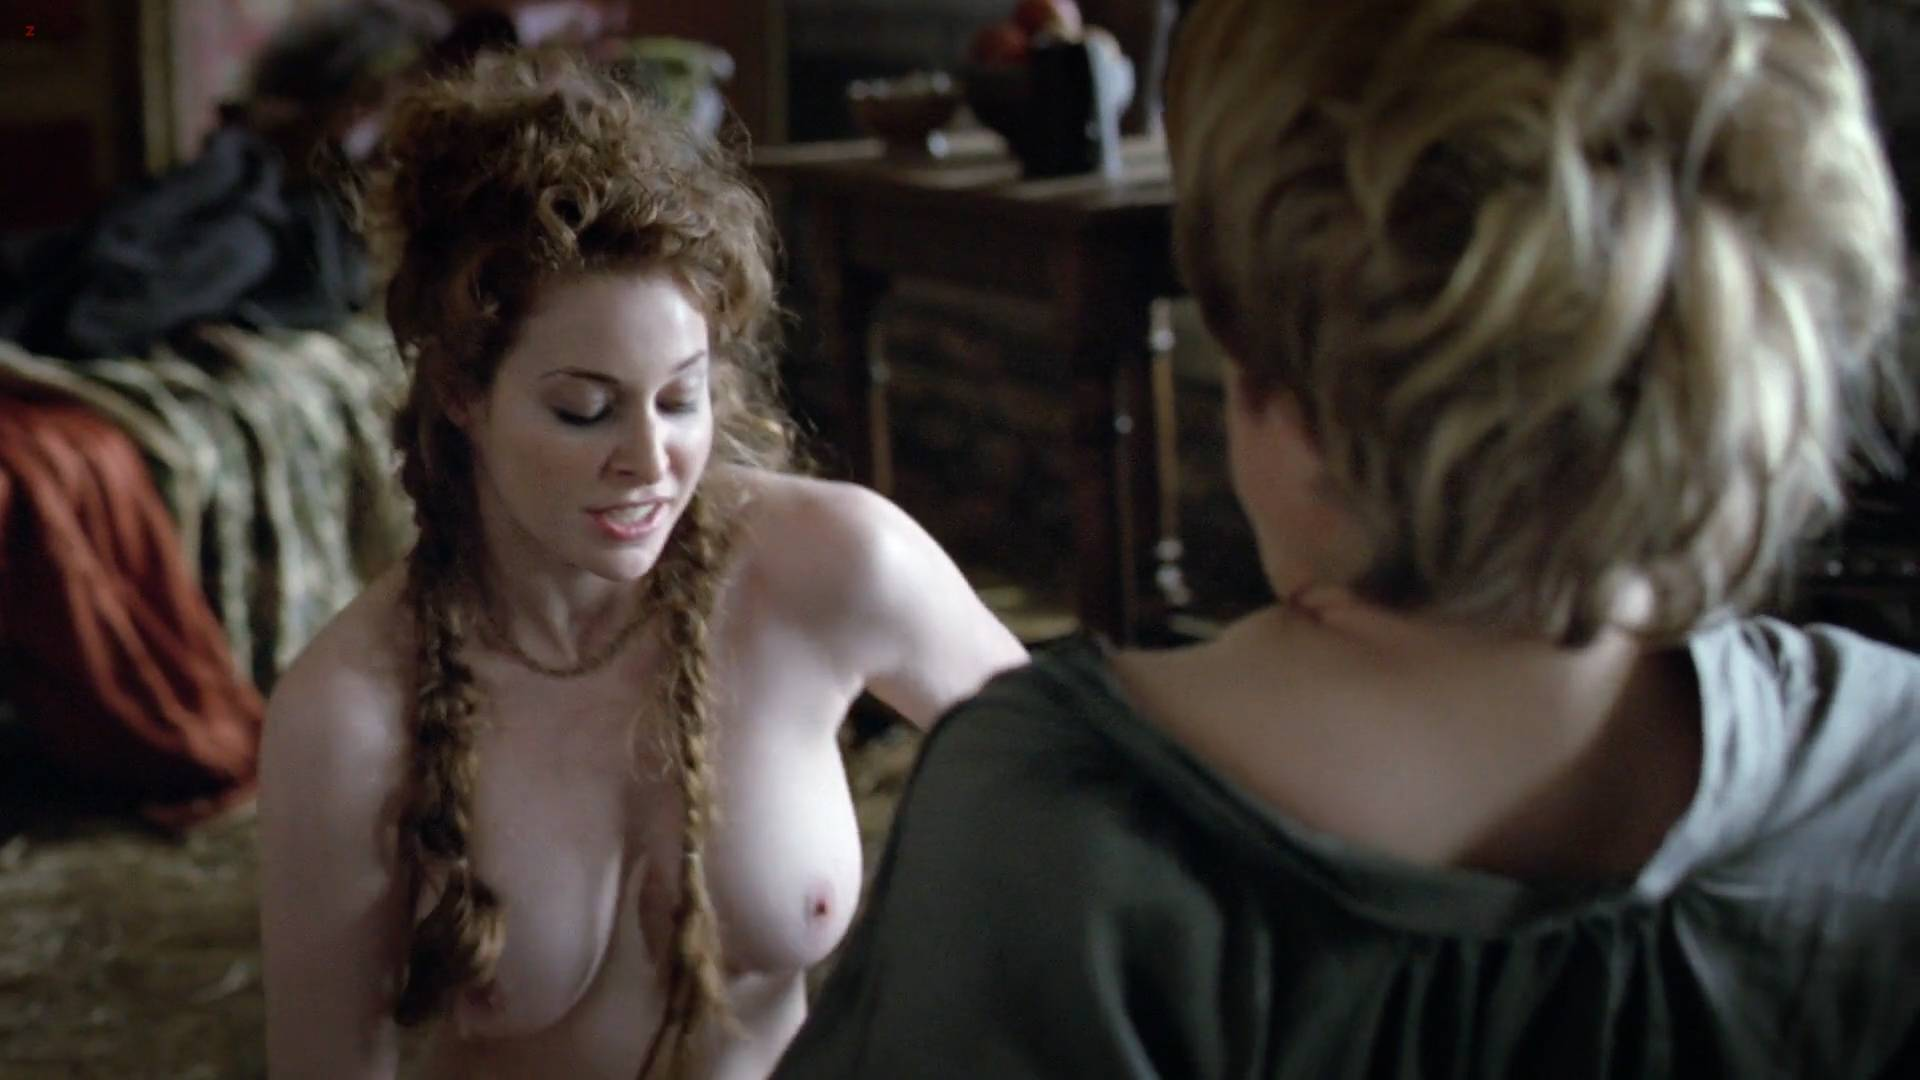 dominique mcelligott tits and pussy